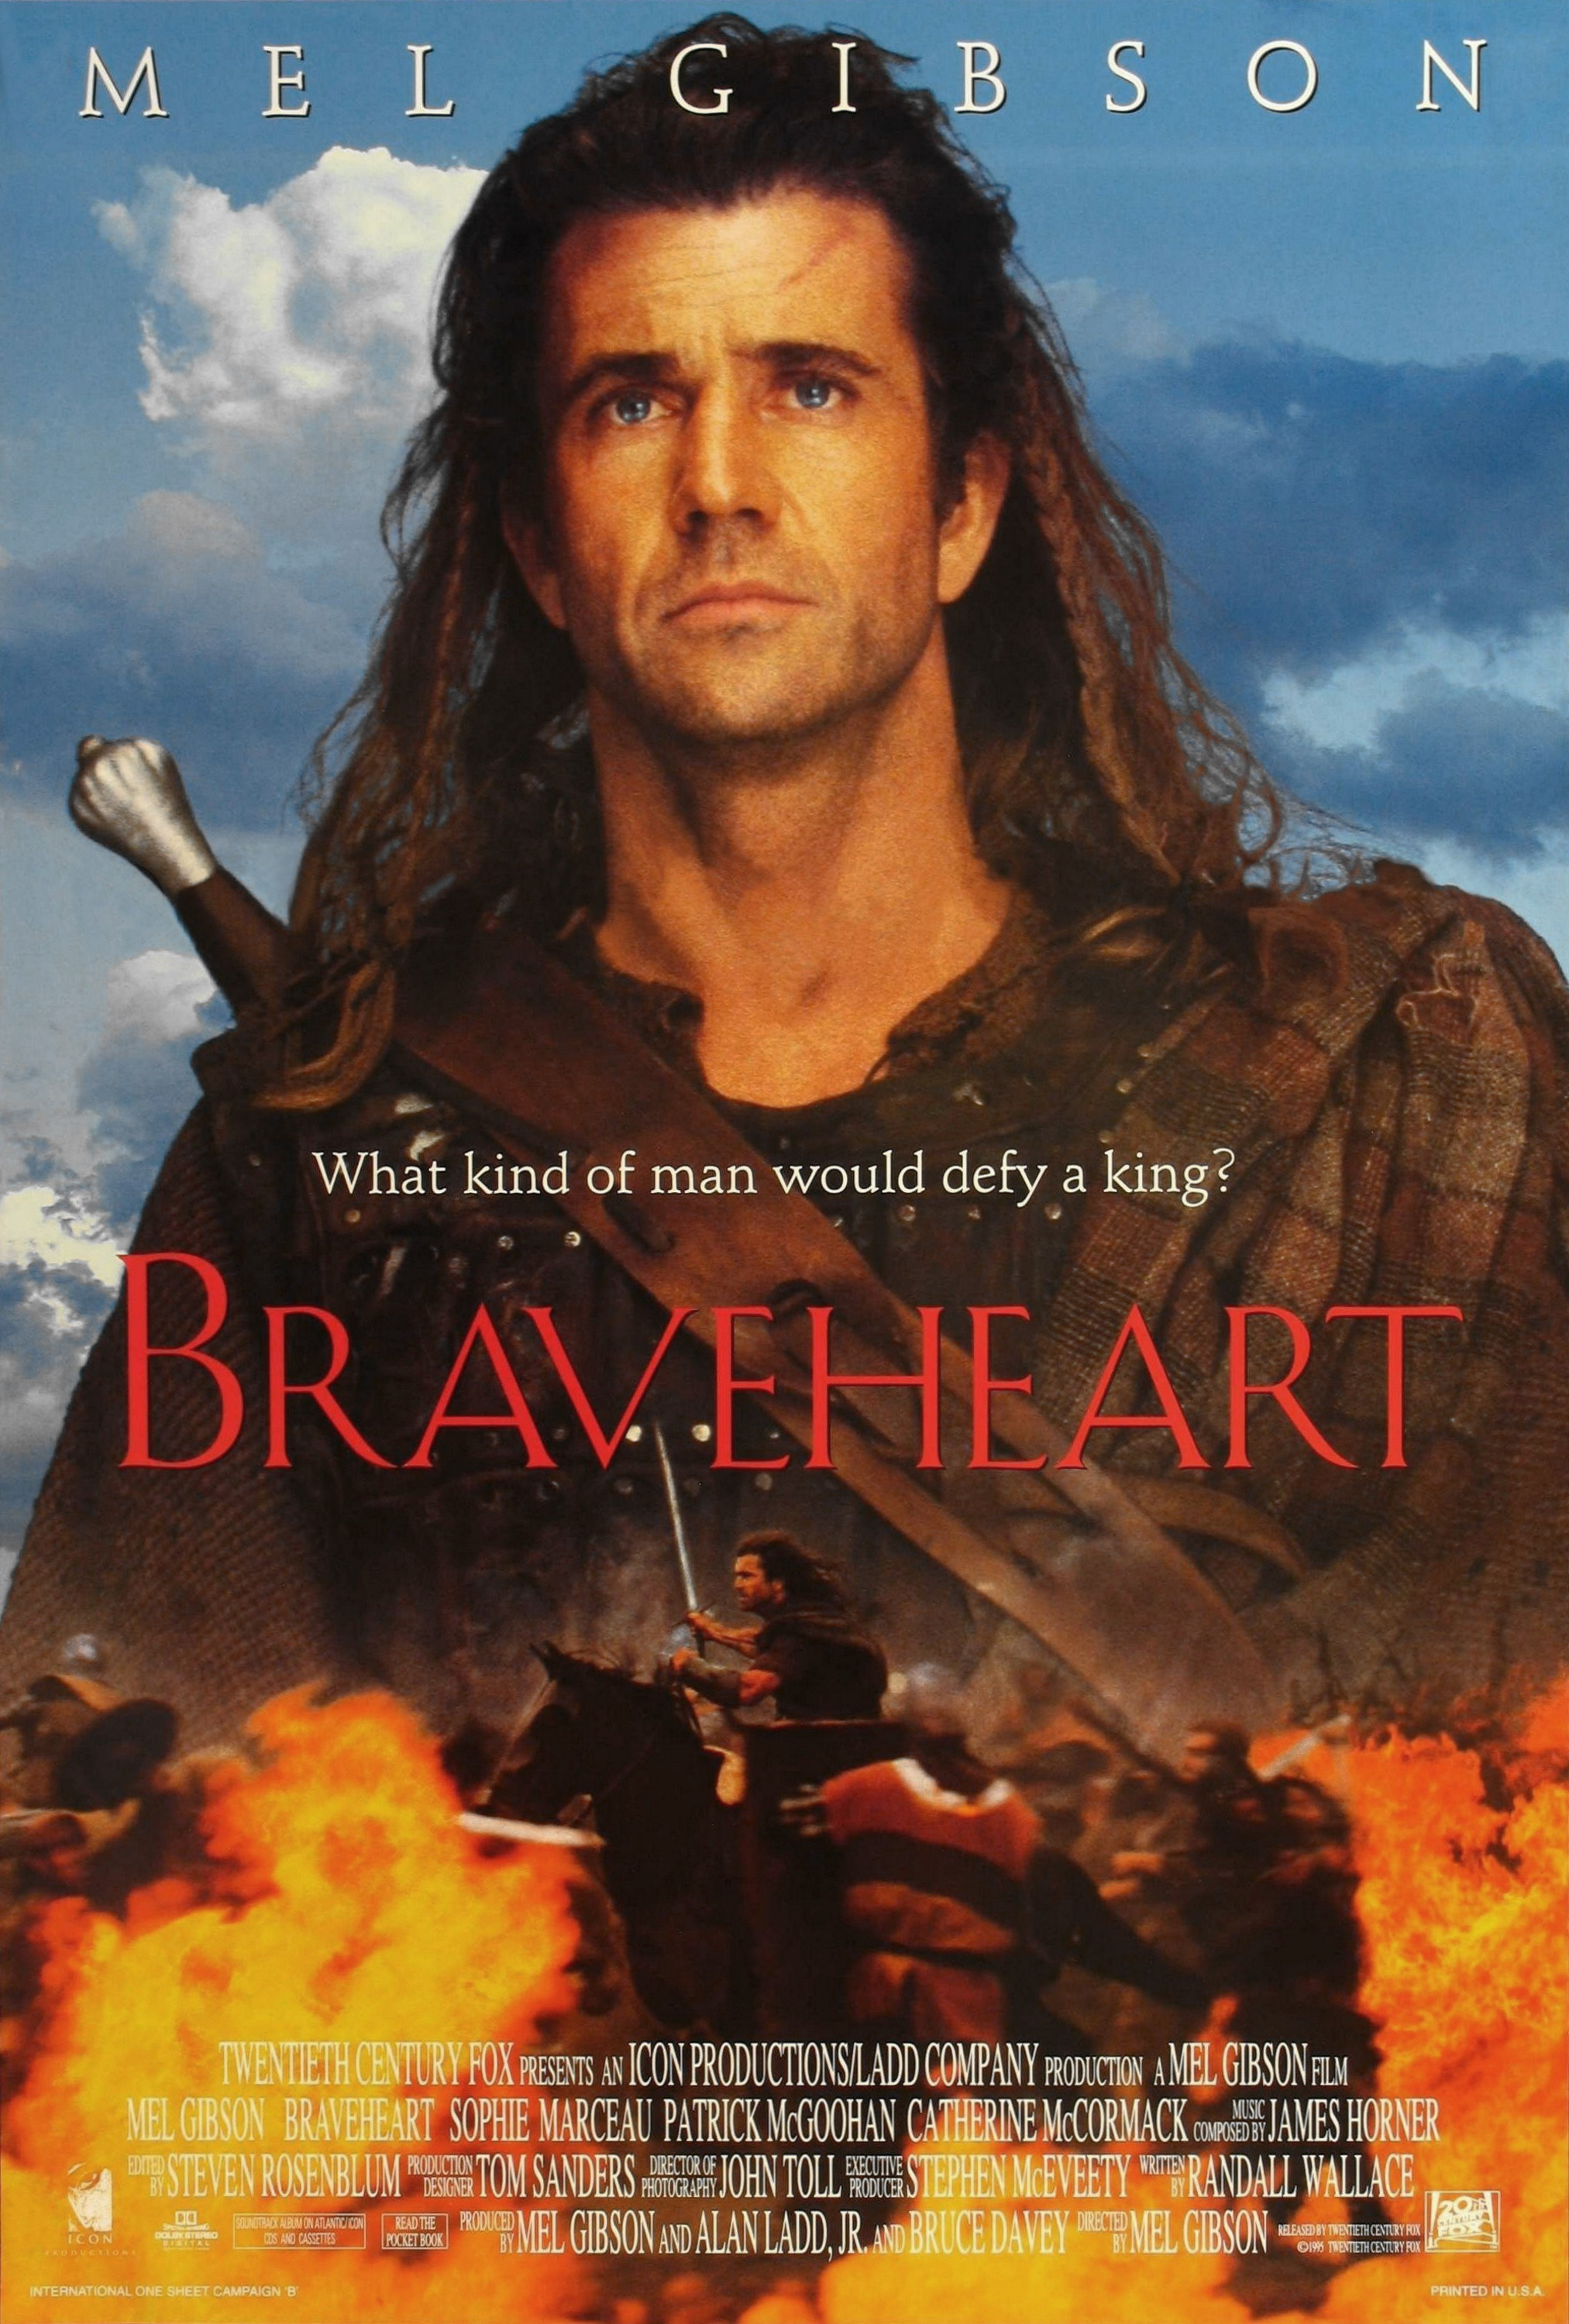 My Favorite Scene: Braveheart (1995) | Killing Time